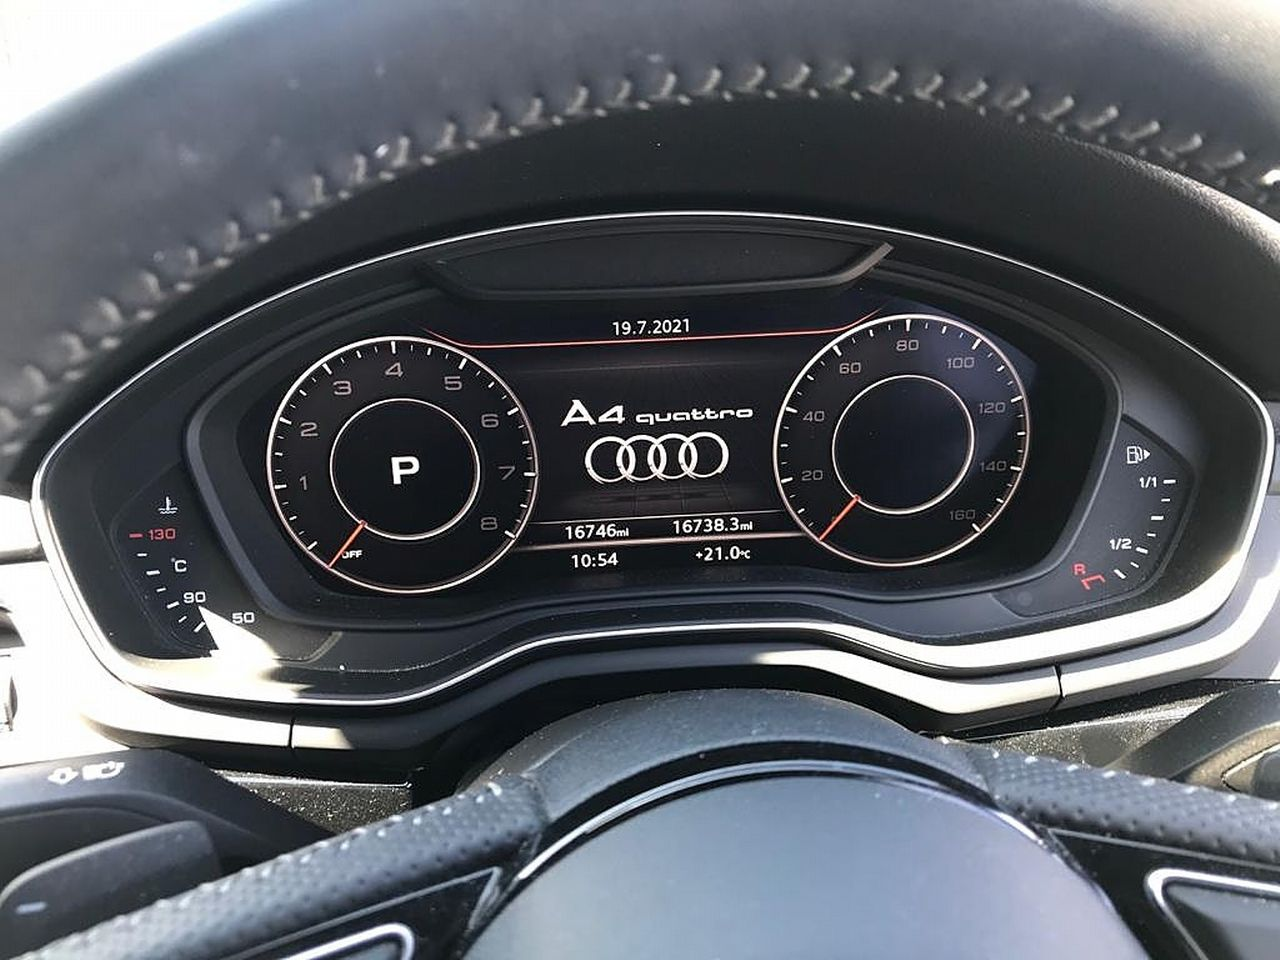 2017 AUDI A4 Black Ed 2.0 TFSI 252PS quattro S tronic - Picture 16 of 17